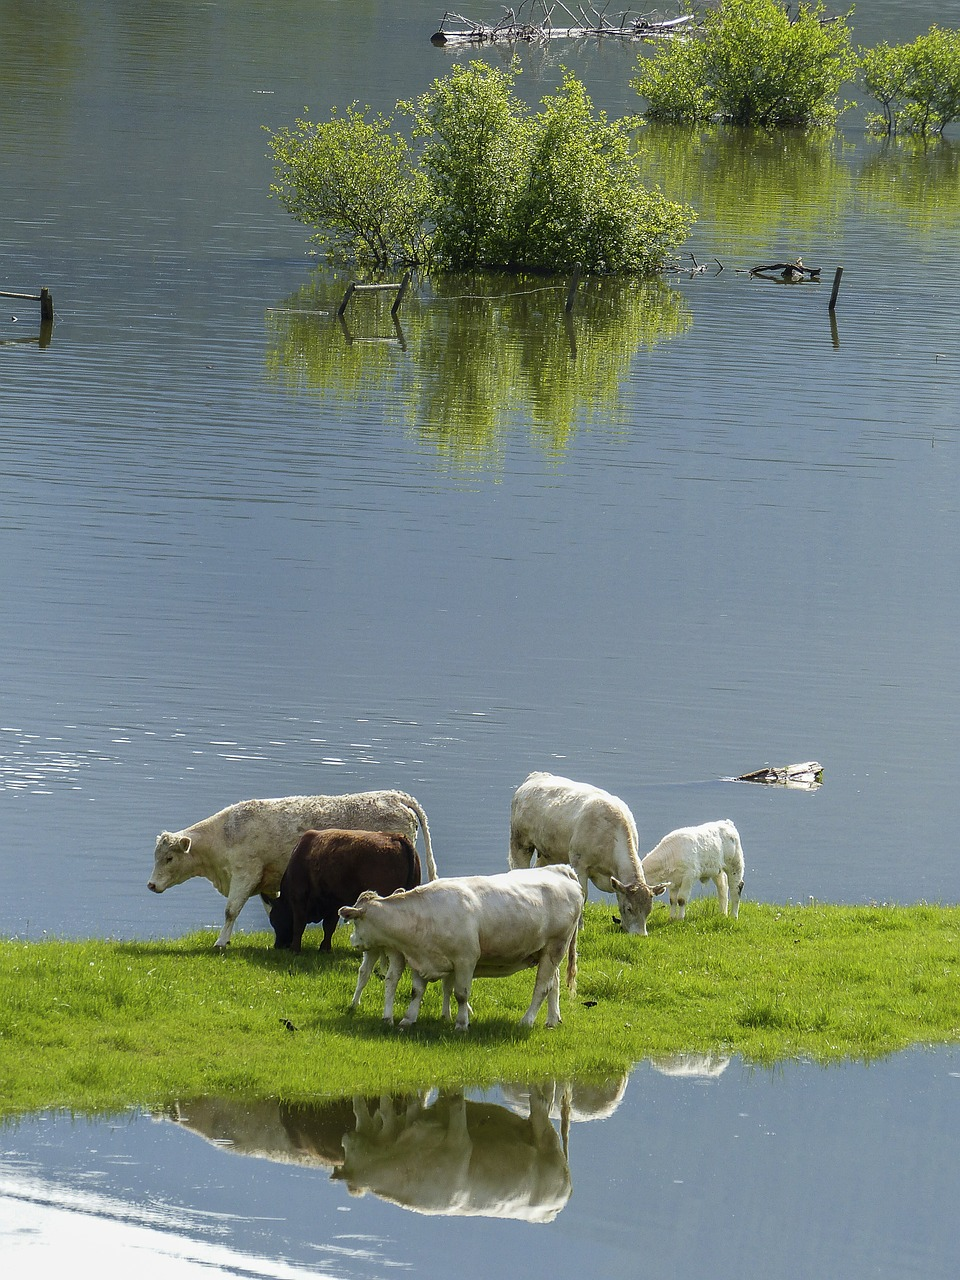 cows-surrounded water358963_1280